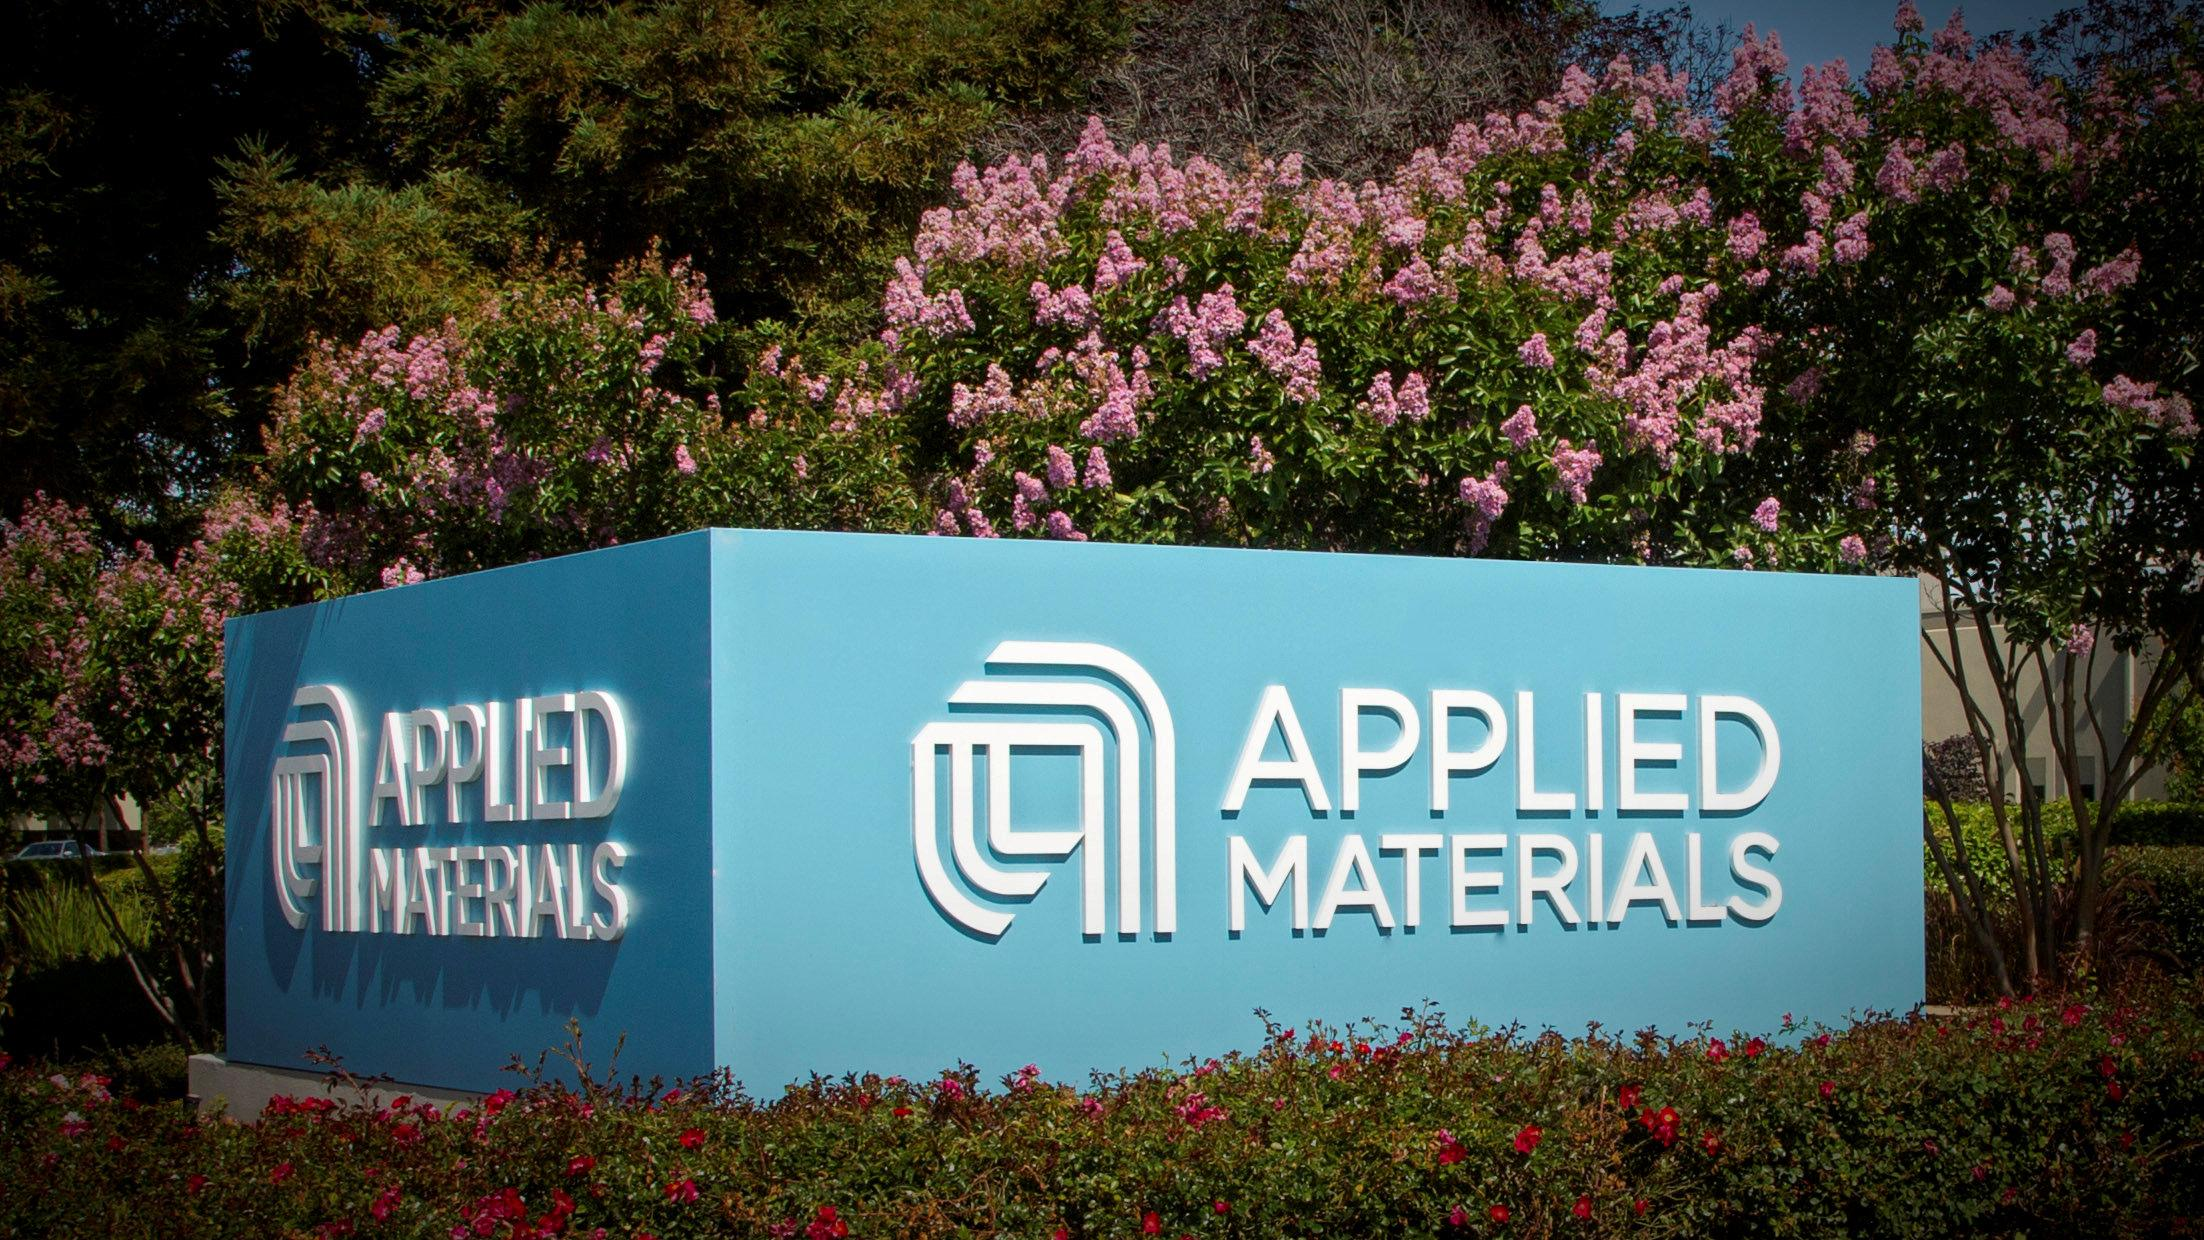 Applied Materials' new corporate signage photo in Santa Clara, California, U.S. is shown in this image released on August 22, 2016.  Applied Materials/Handout via